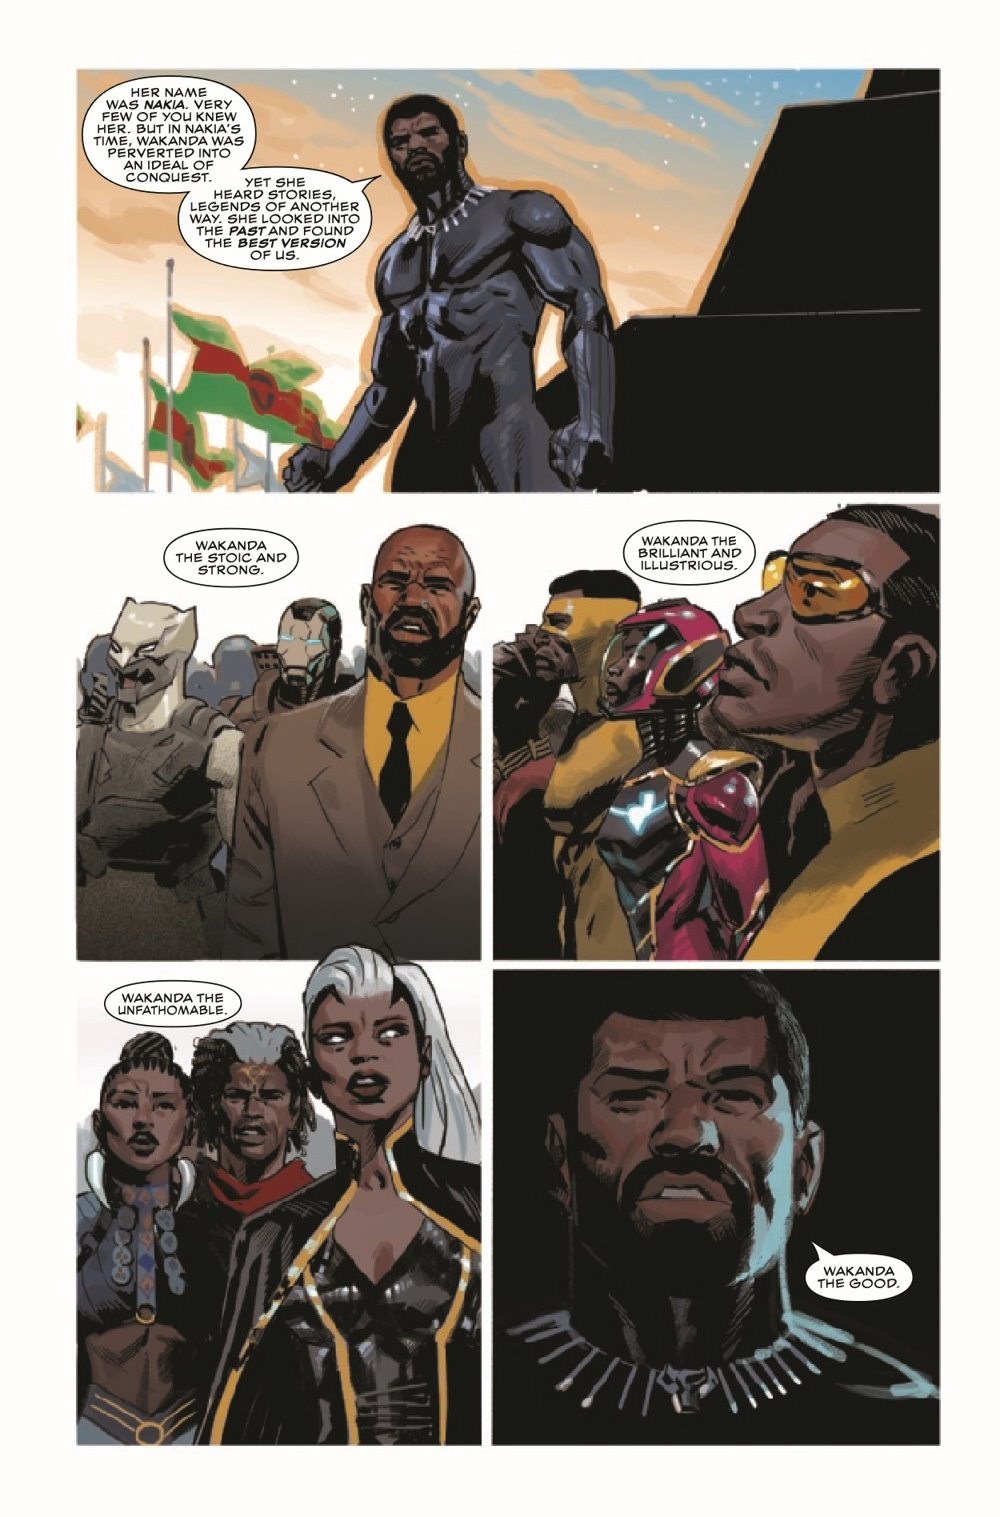 BLAP2018023_Preview-6 ComicList Previews: BLACK PANTHER #23